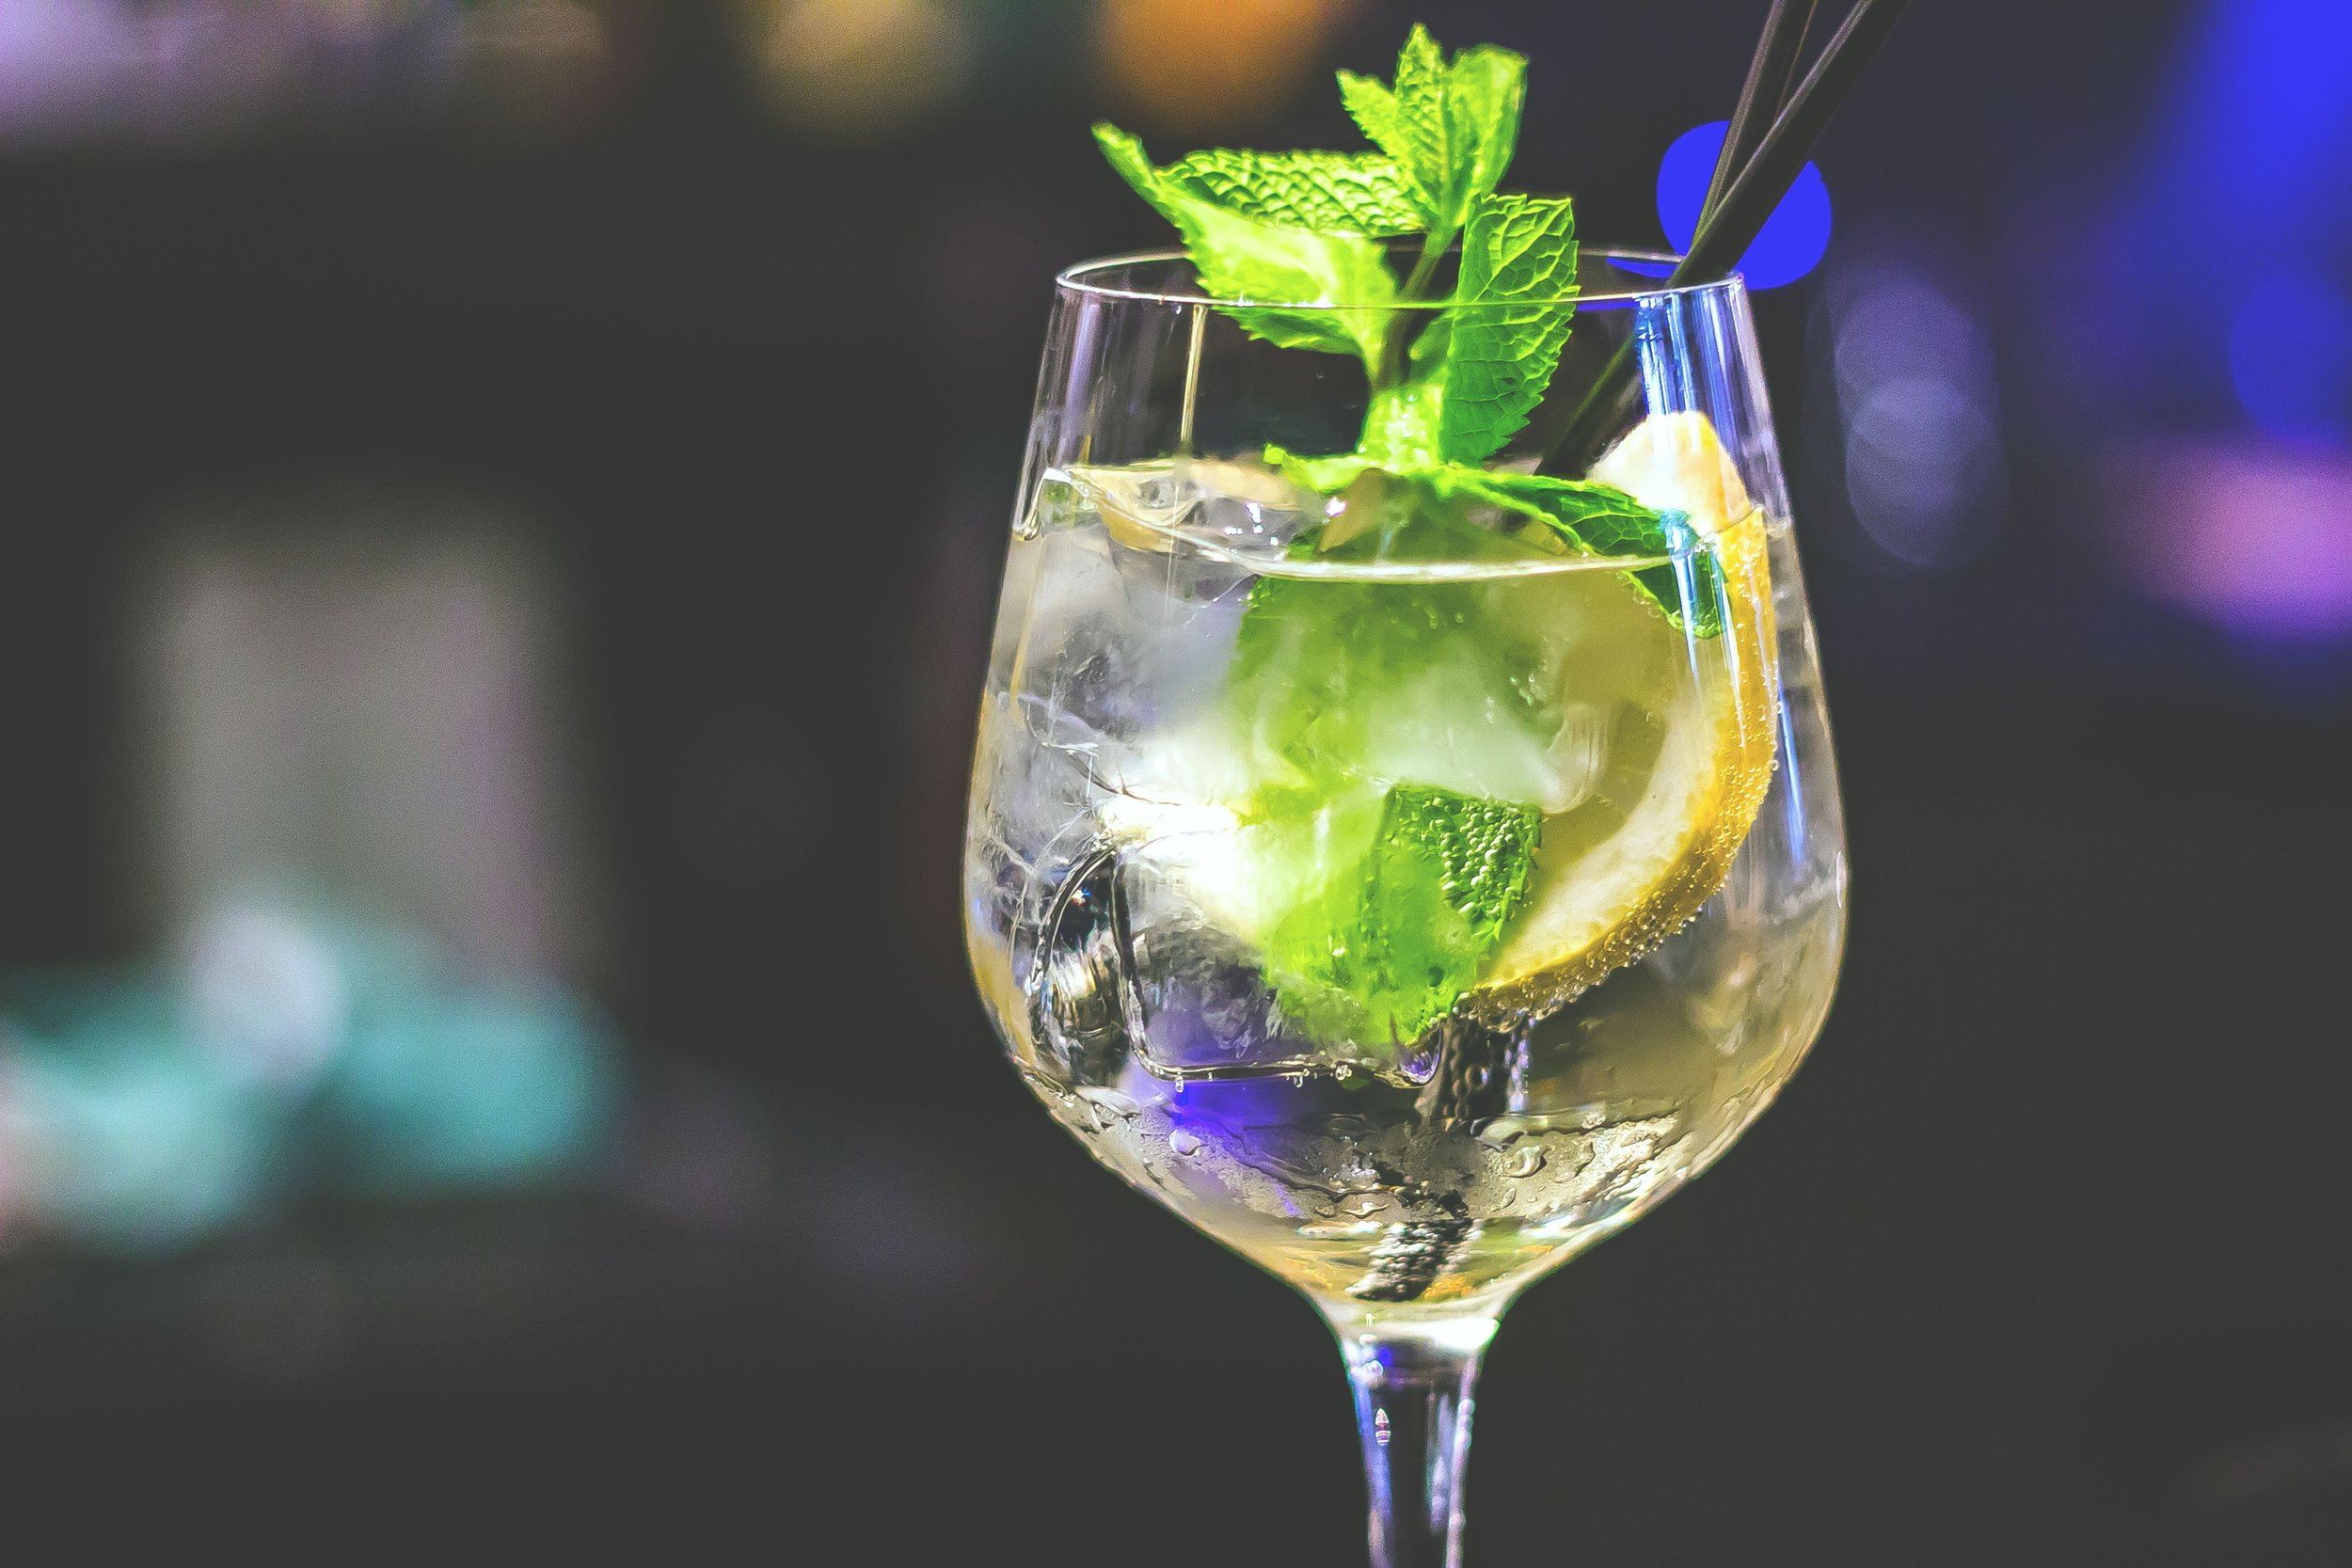 """- """"Typically, Northern Ireland's talented bar-folk know how to serve up a great gin but if your glass could fit more ice, then absolutely ask so you can chill out exactly how you intended without having to sip over a melted mess.""""Copeland Gin is available at all good off-sales and bars and restaurants across NI. For more information or to join in the conversation visit coplelandspirits.com or search #copelandgin on social media.Always drink responsibly."""